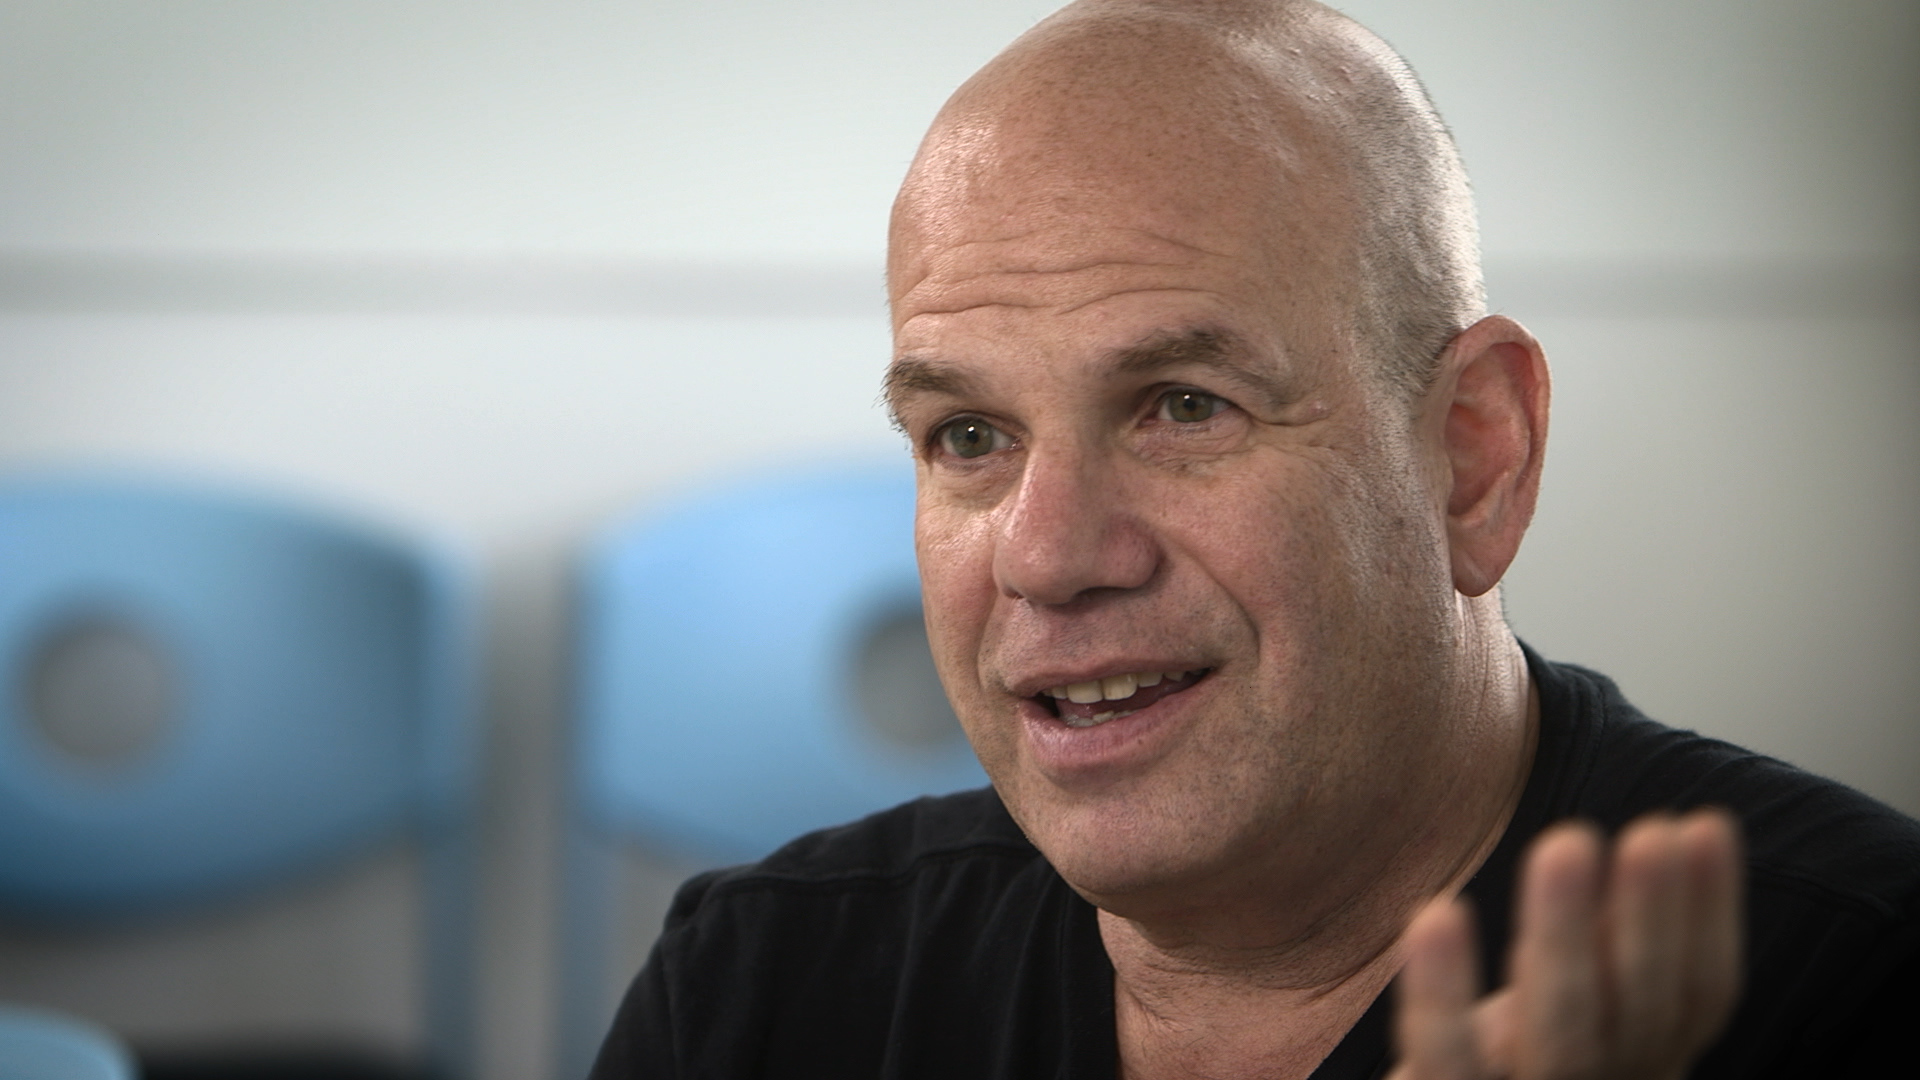 'The Wire's' David Simon on the drug war and why he hates 'Cops' and 'Law & Order'